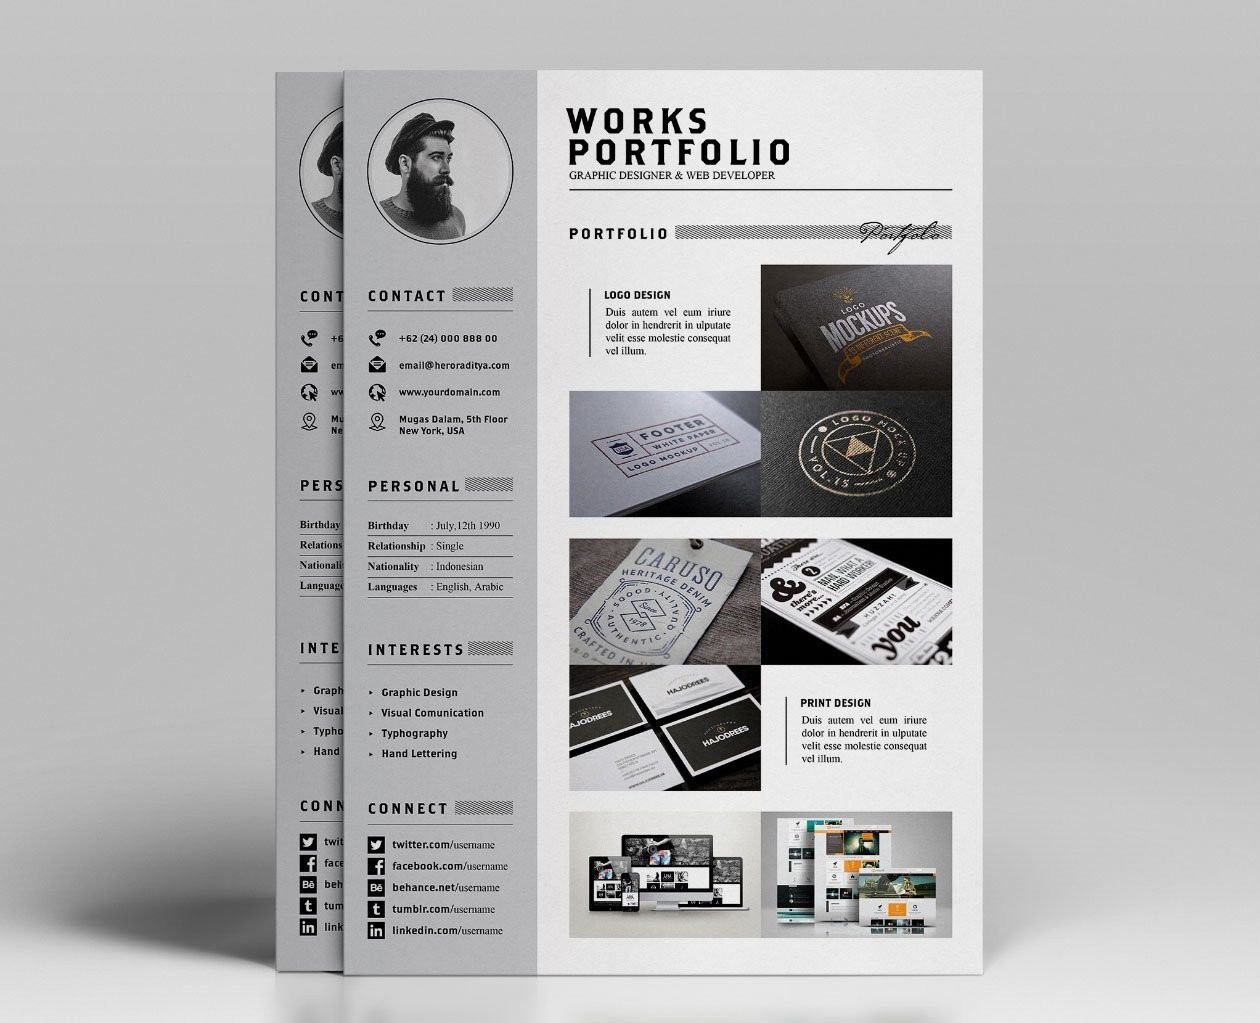 resume template builder Free Resume, CV and Portfolio Template in Photoshop (PSD ...